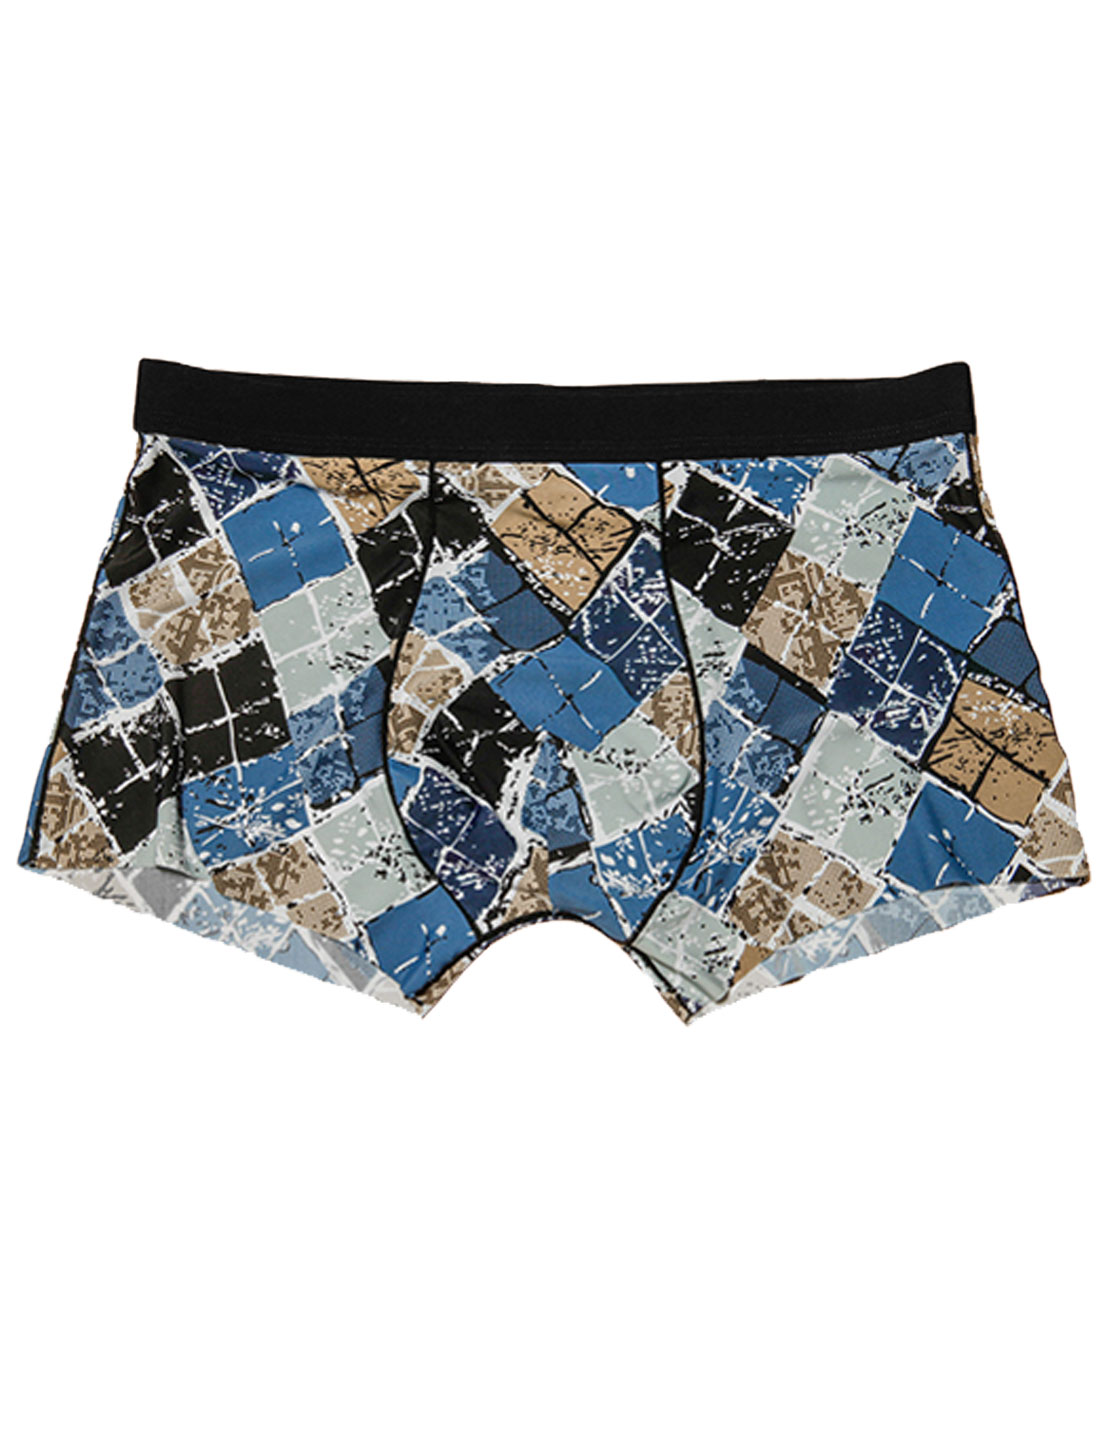 Men Elastic Waist Argyle Pattern Stretch Boxer Briefs Navy Blue Brown W30